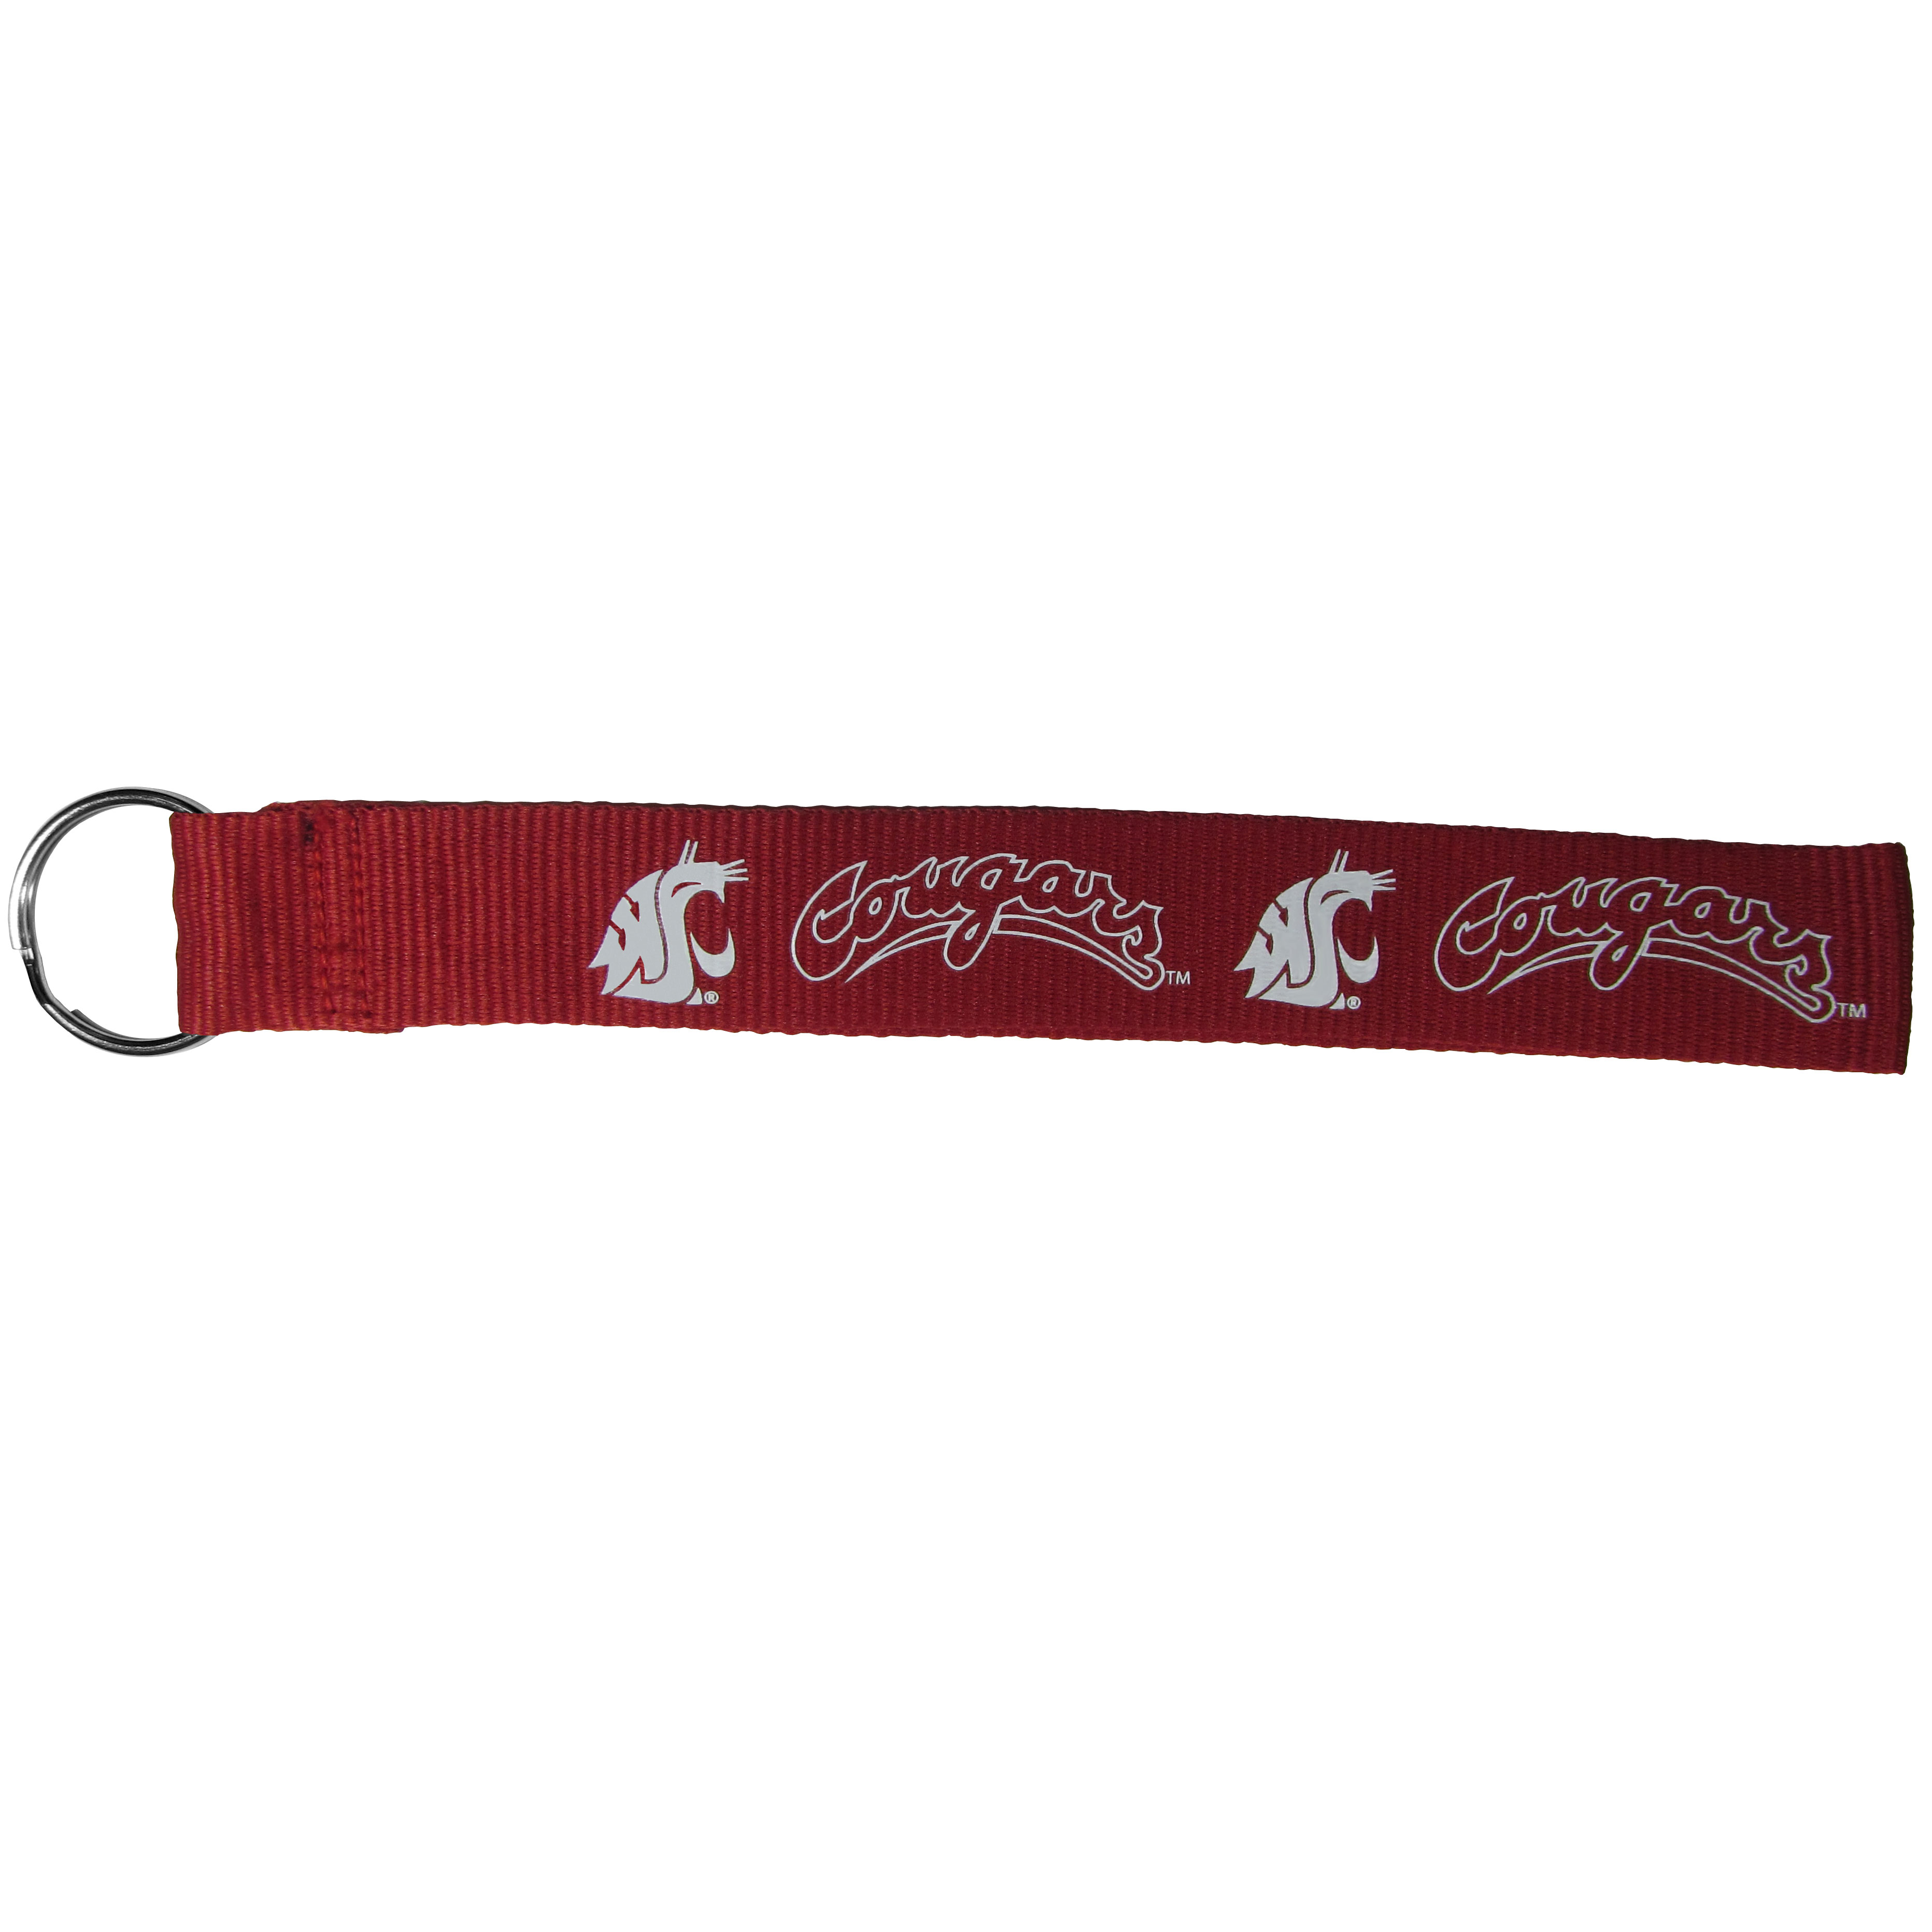 Washington St. Cougars  Lanyard Key Chain - Our wrist strap lanyard key chain is made of durable and comfortable woven material and is a not only a great key chain but an easy way to keep track of your keys. The bright Washington St. Cougars graffics makes this key chain easy to find in gym bags, purses and in the dreaded couch cushions.